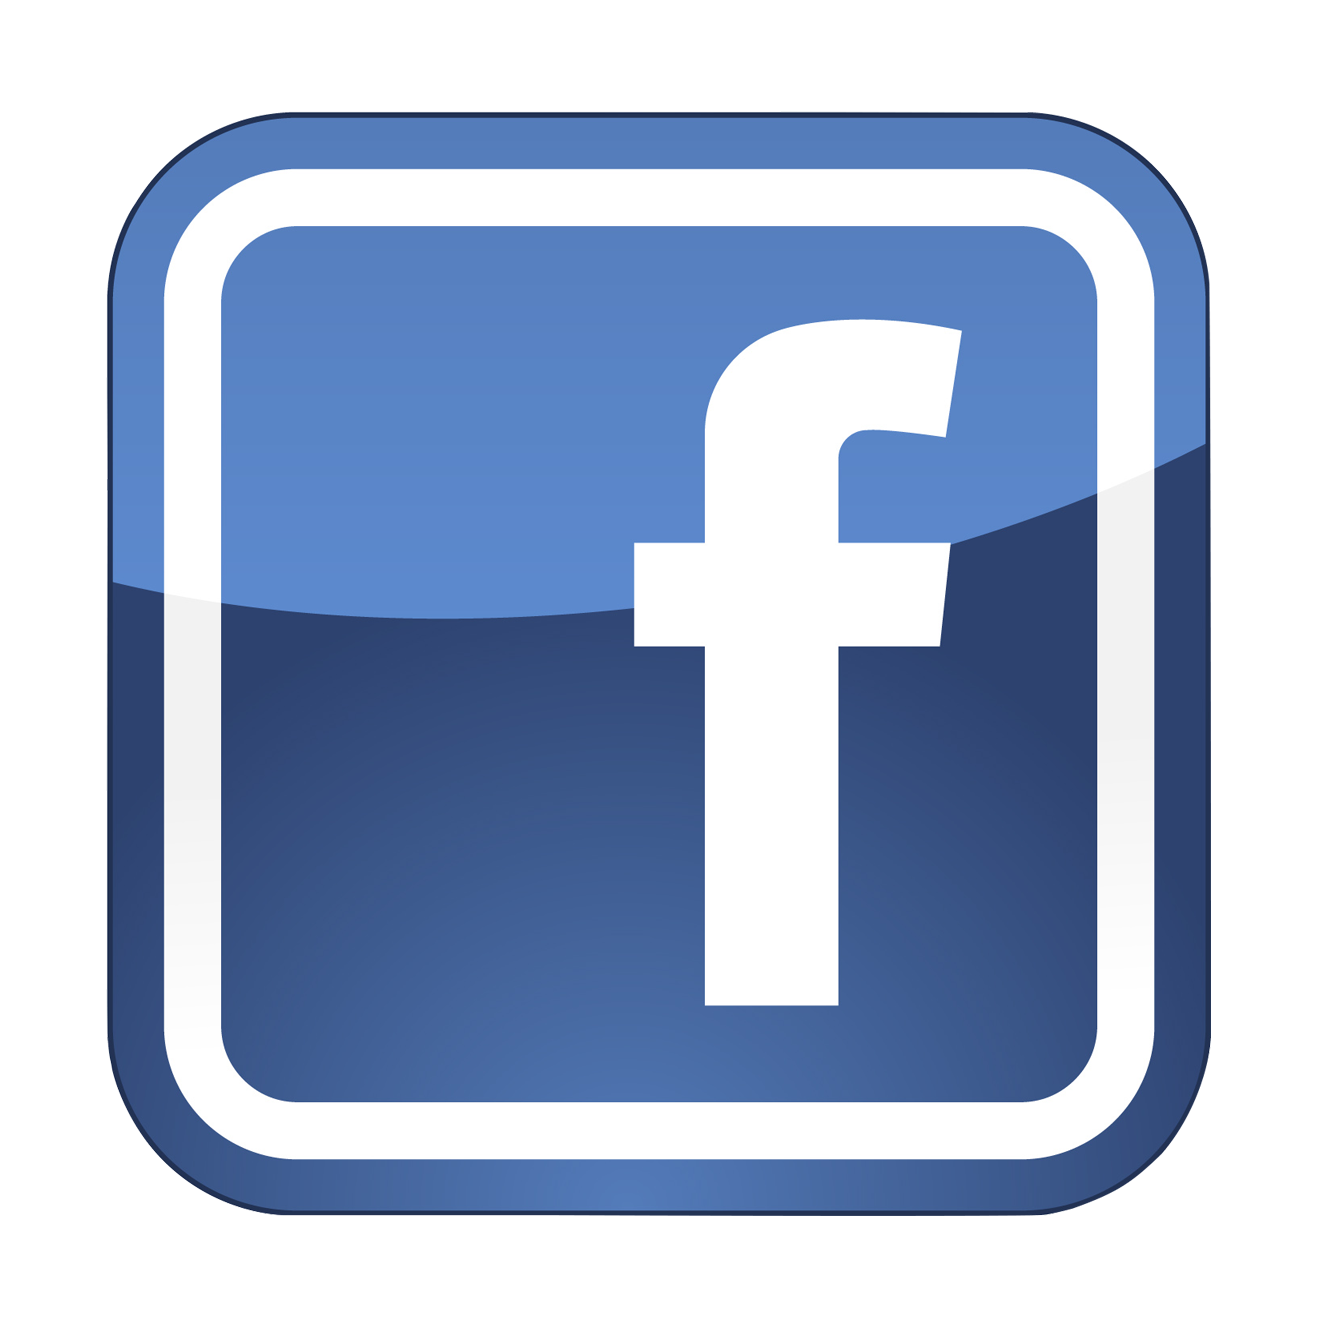 Icons Media Fb Computer Facebook Social PNG Image